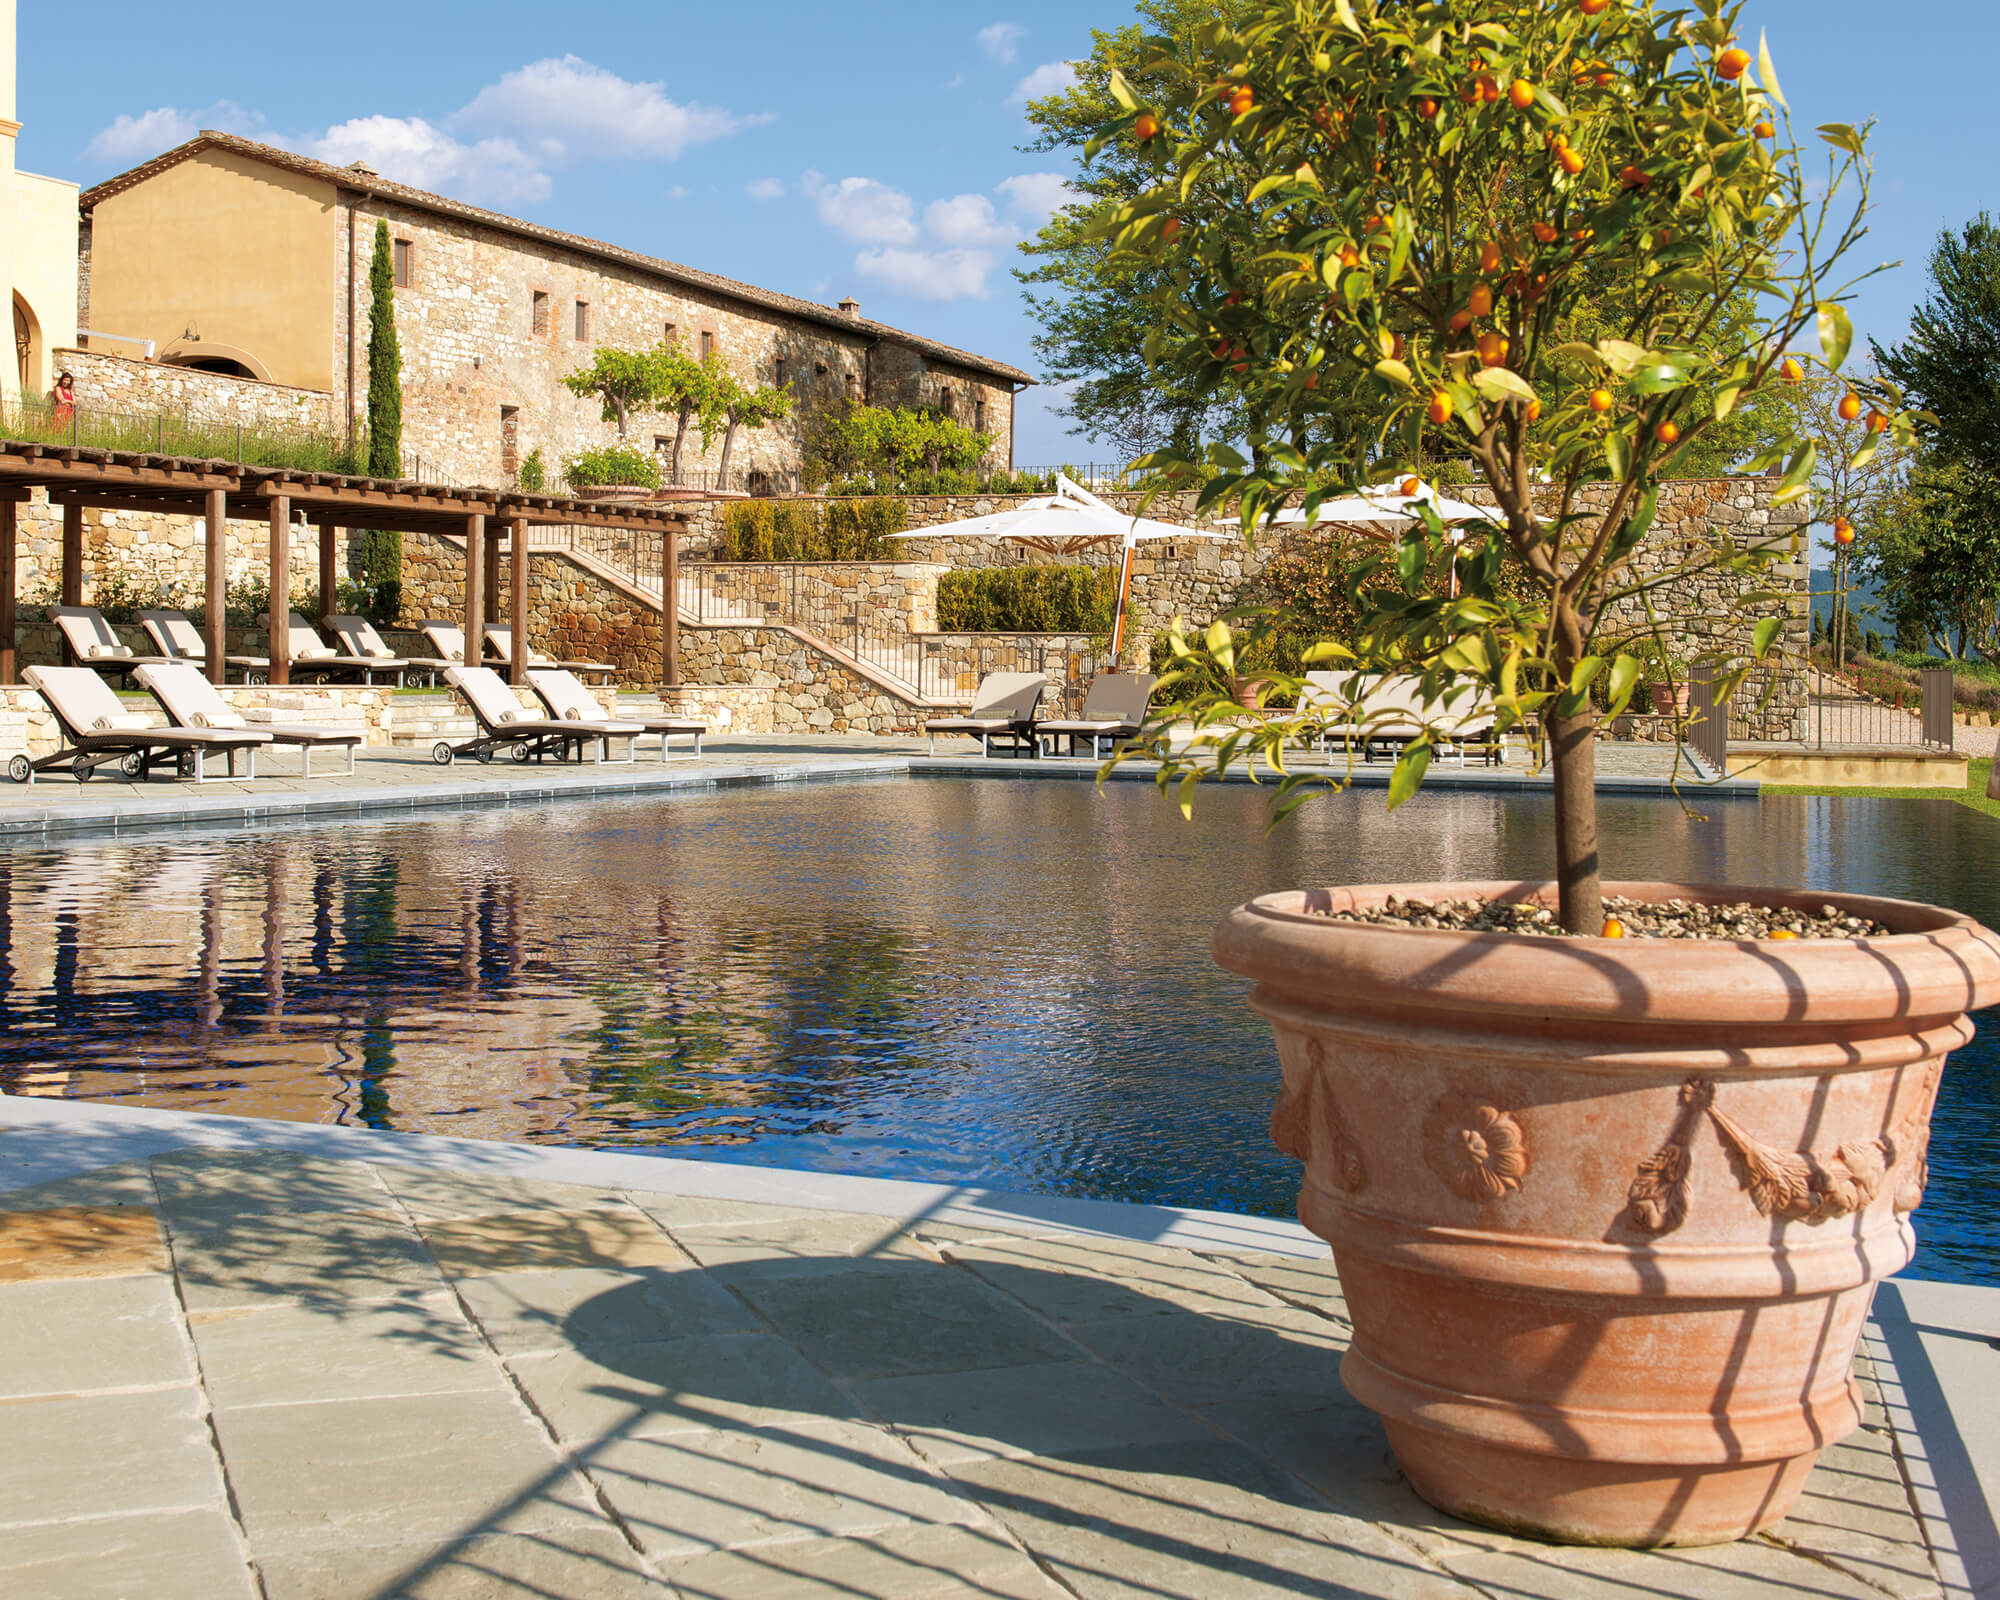 How to Use Terra Cotta Clay Pots in Your Pool Design